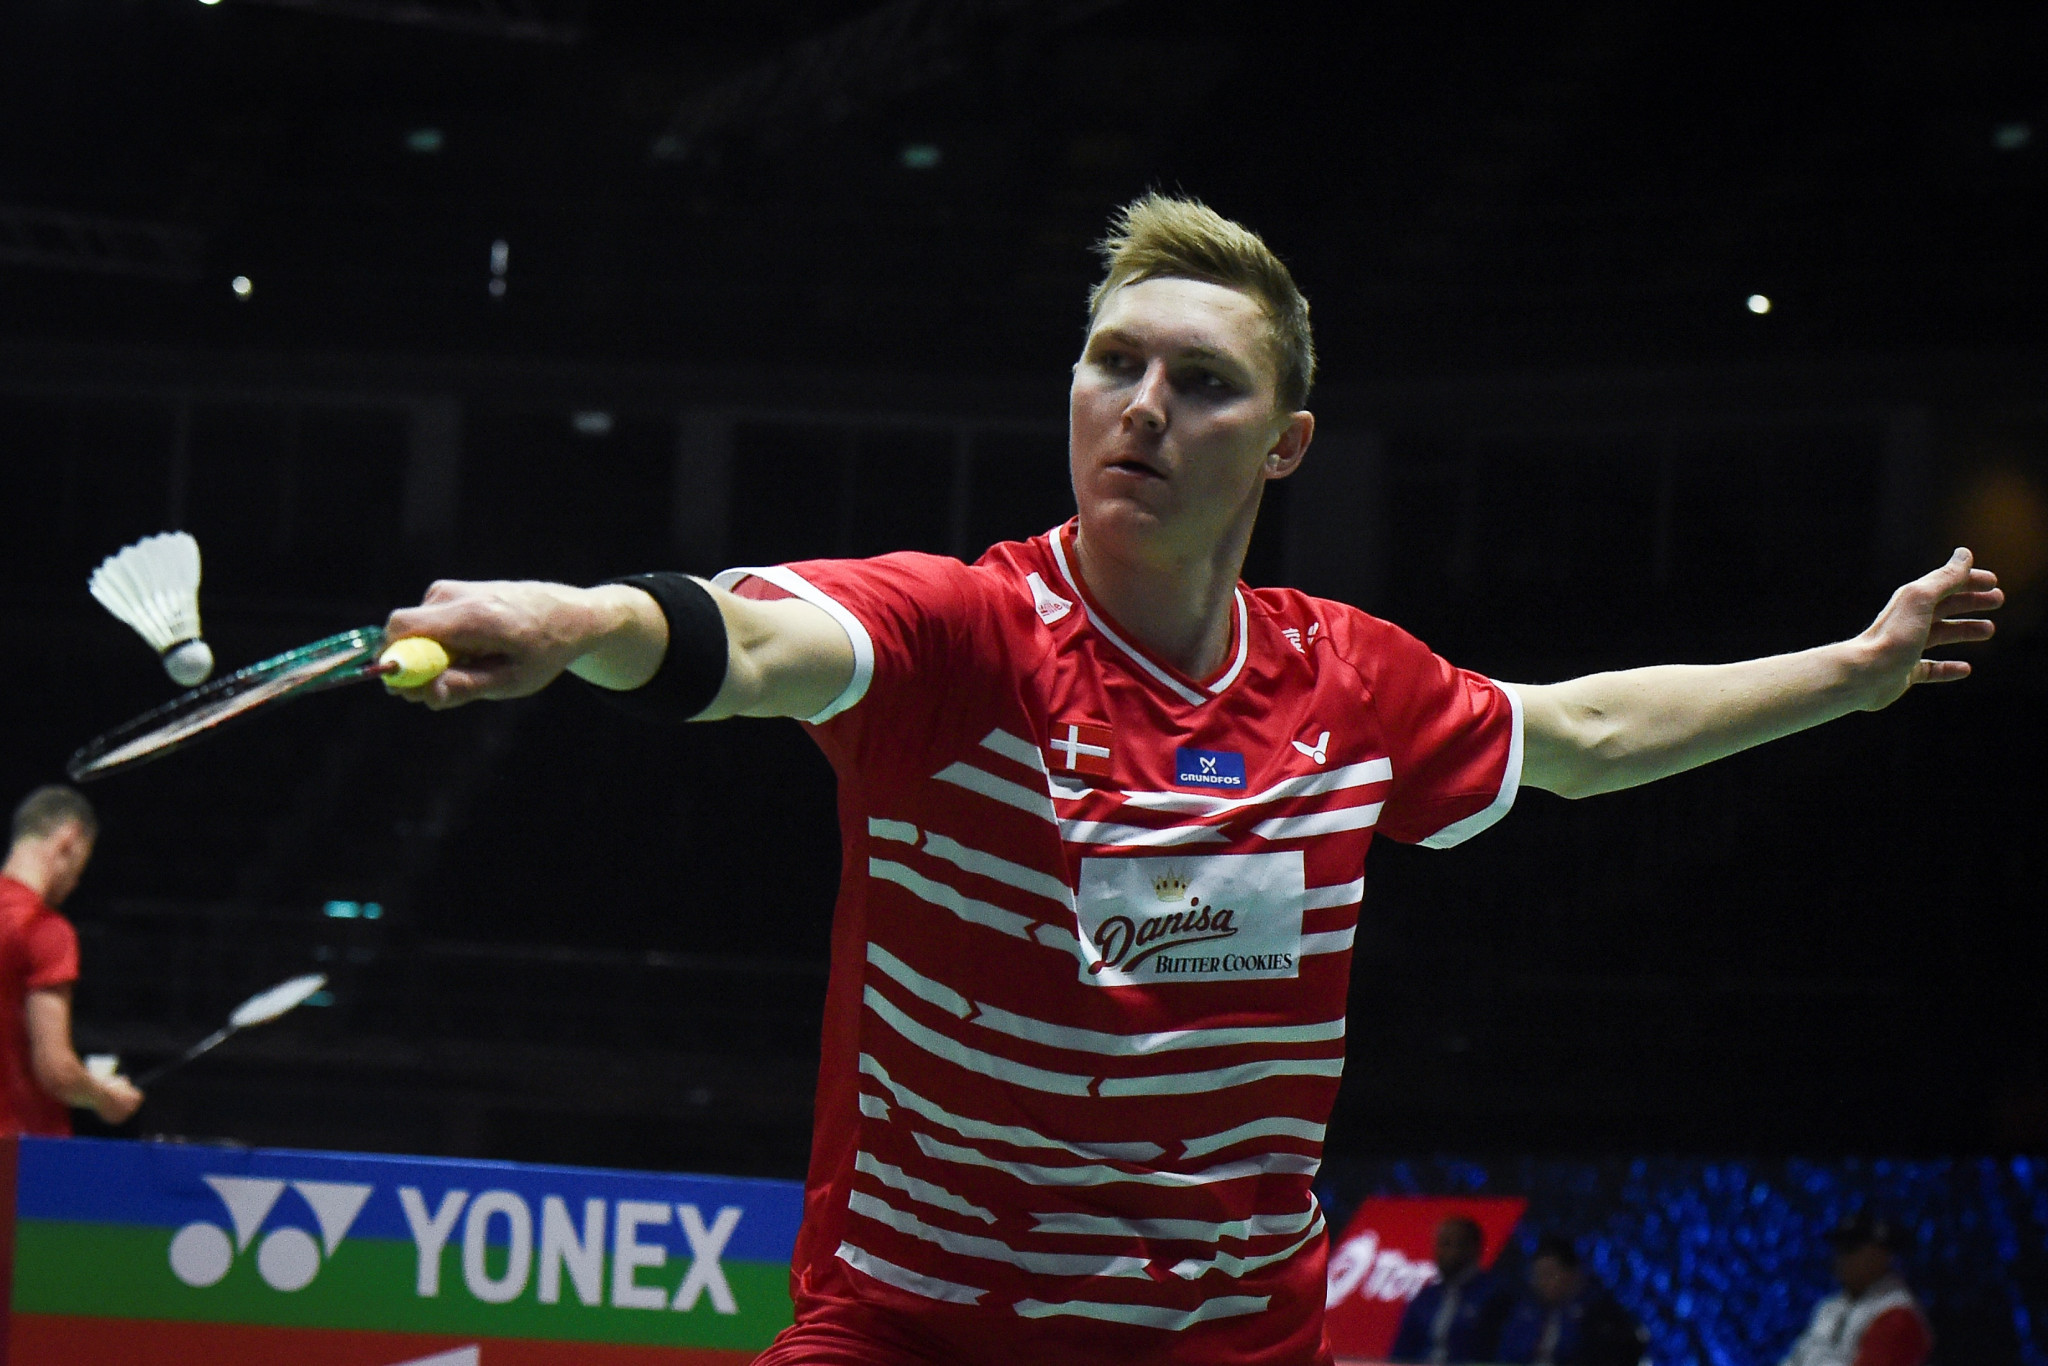 Defending champions Denmark continue impressive form at BWF Thomas Cup